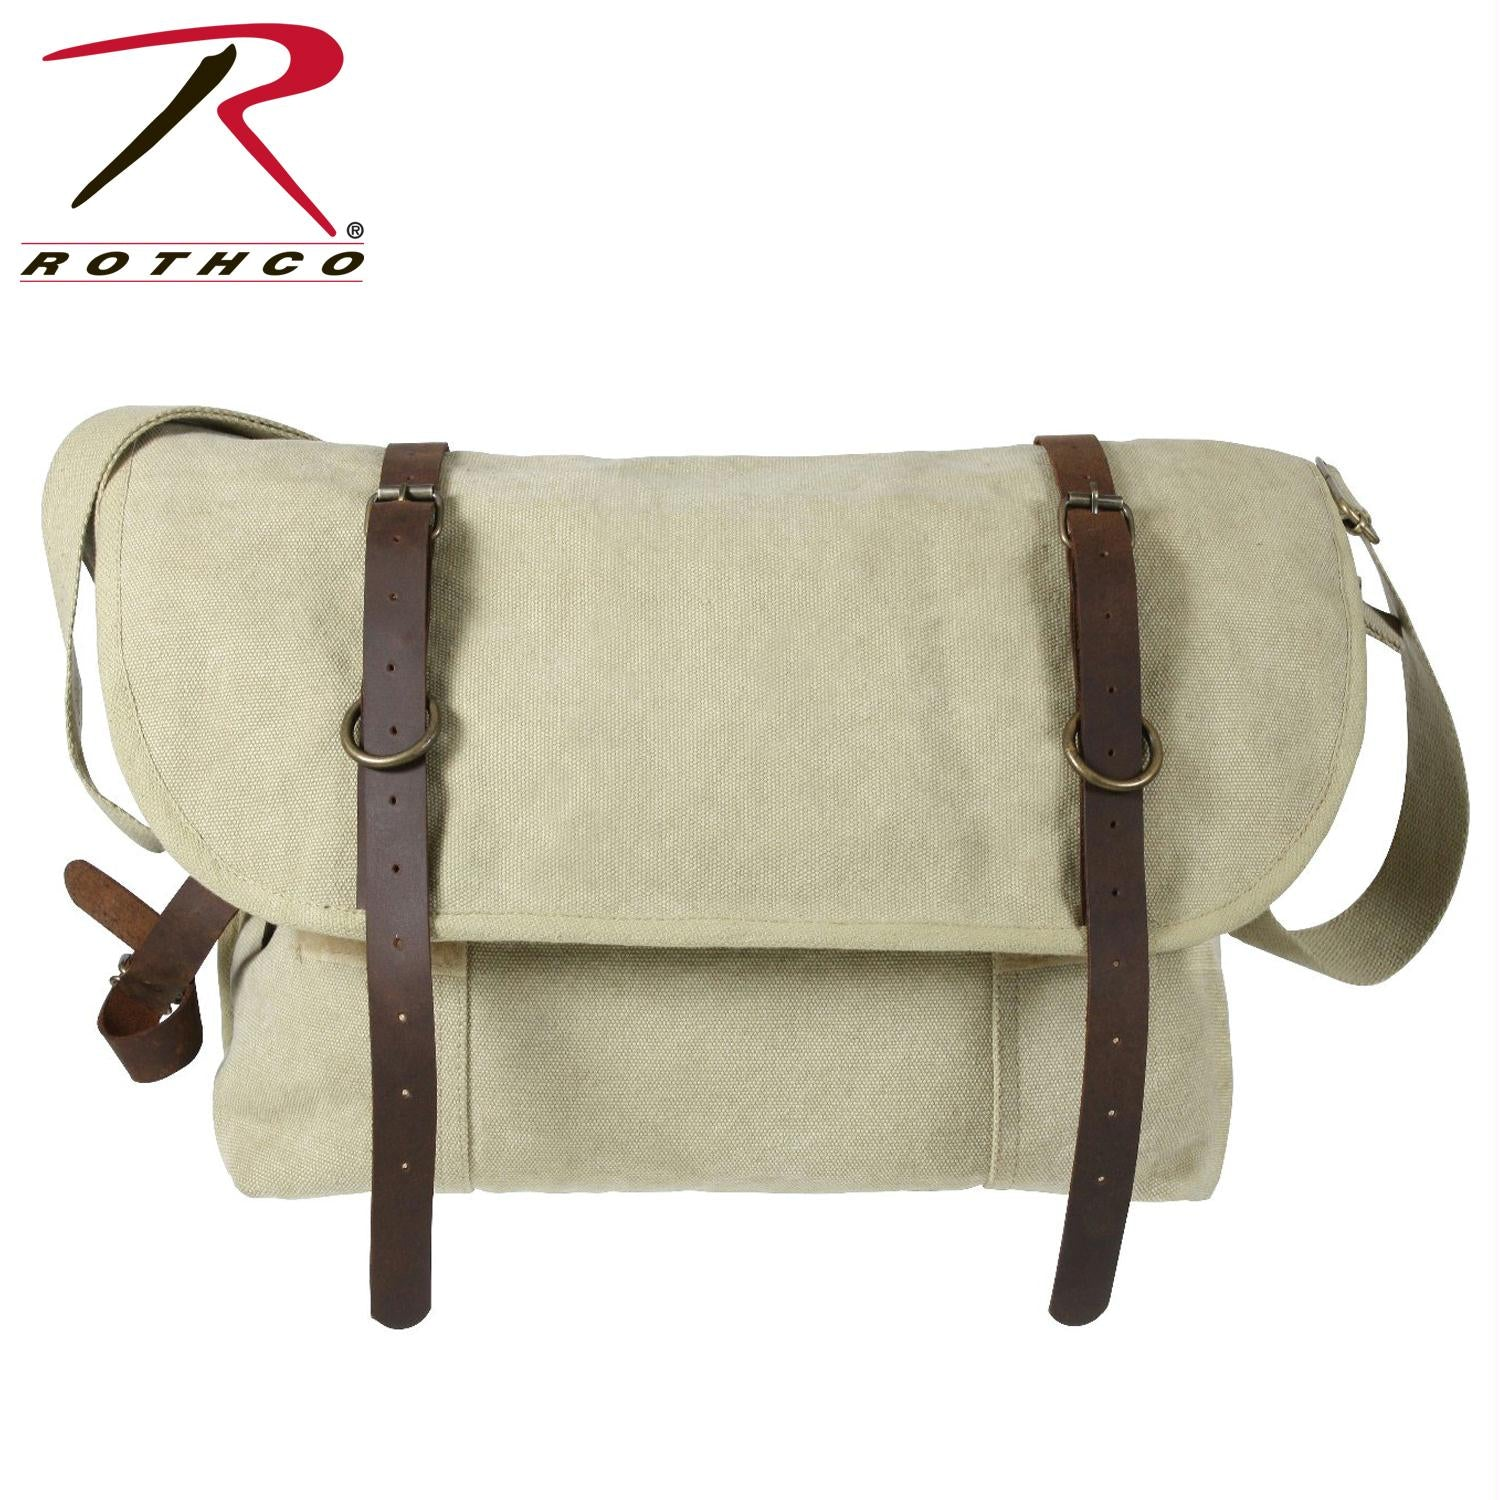 Rothco Vintage Canvas Explorer Shoulder Bag w/ Leather Accents - Khaki